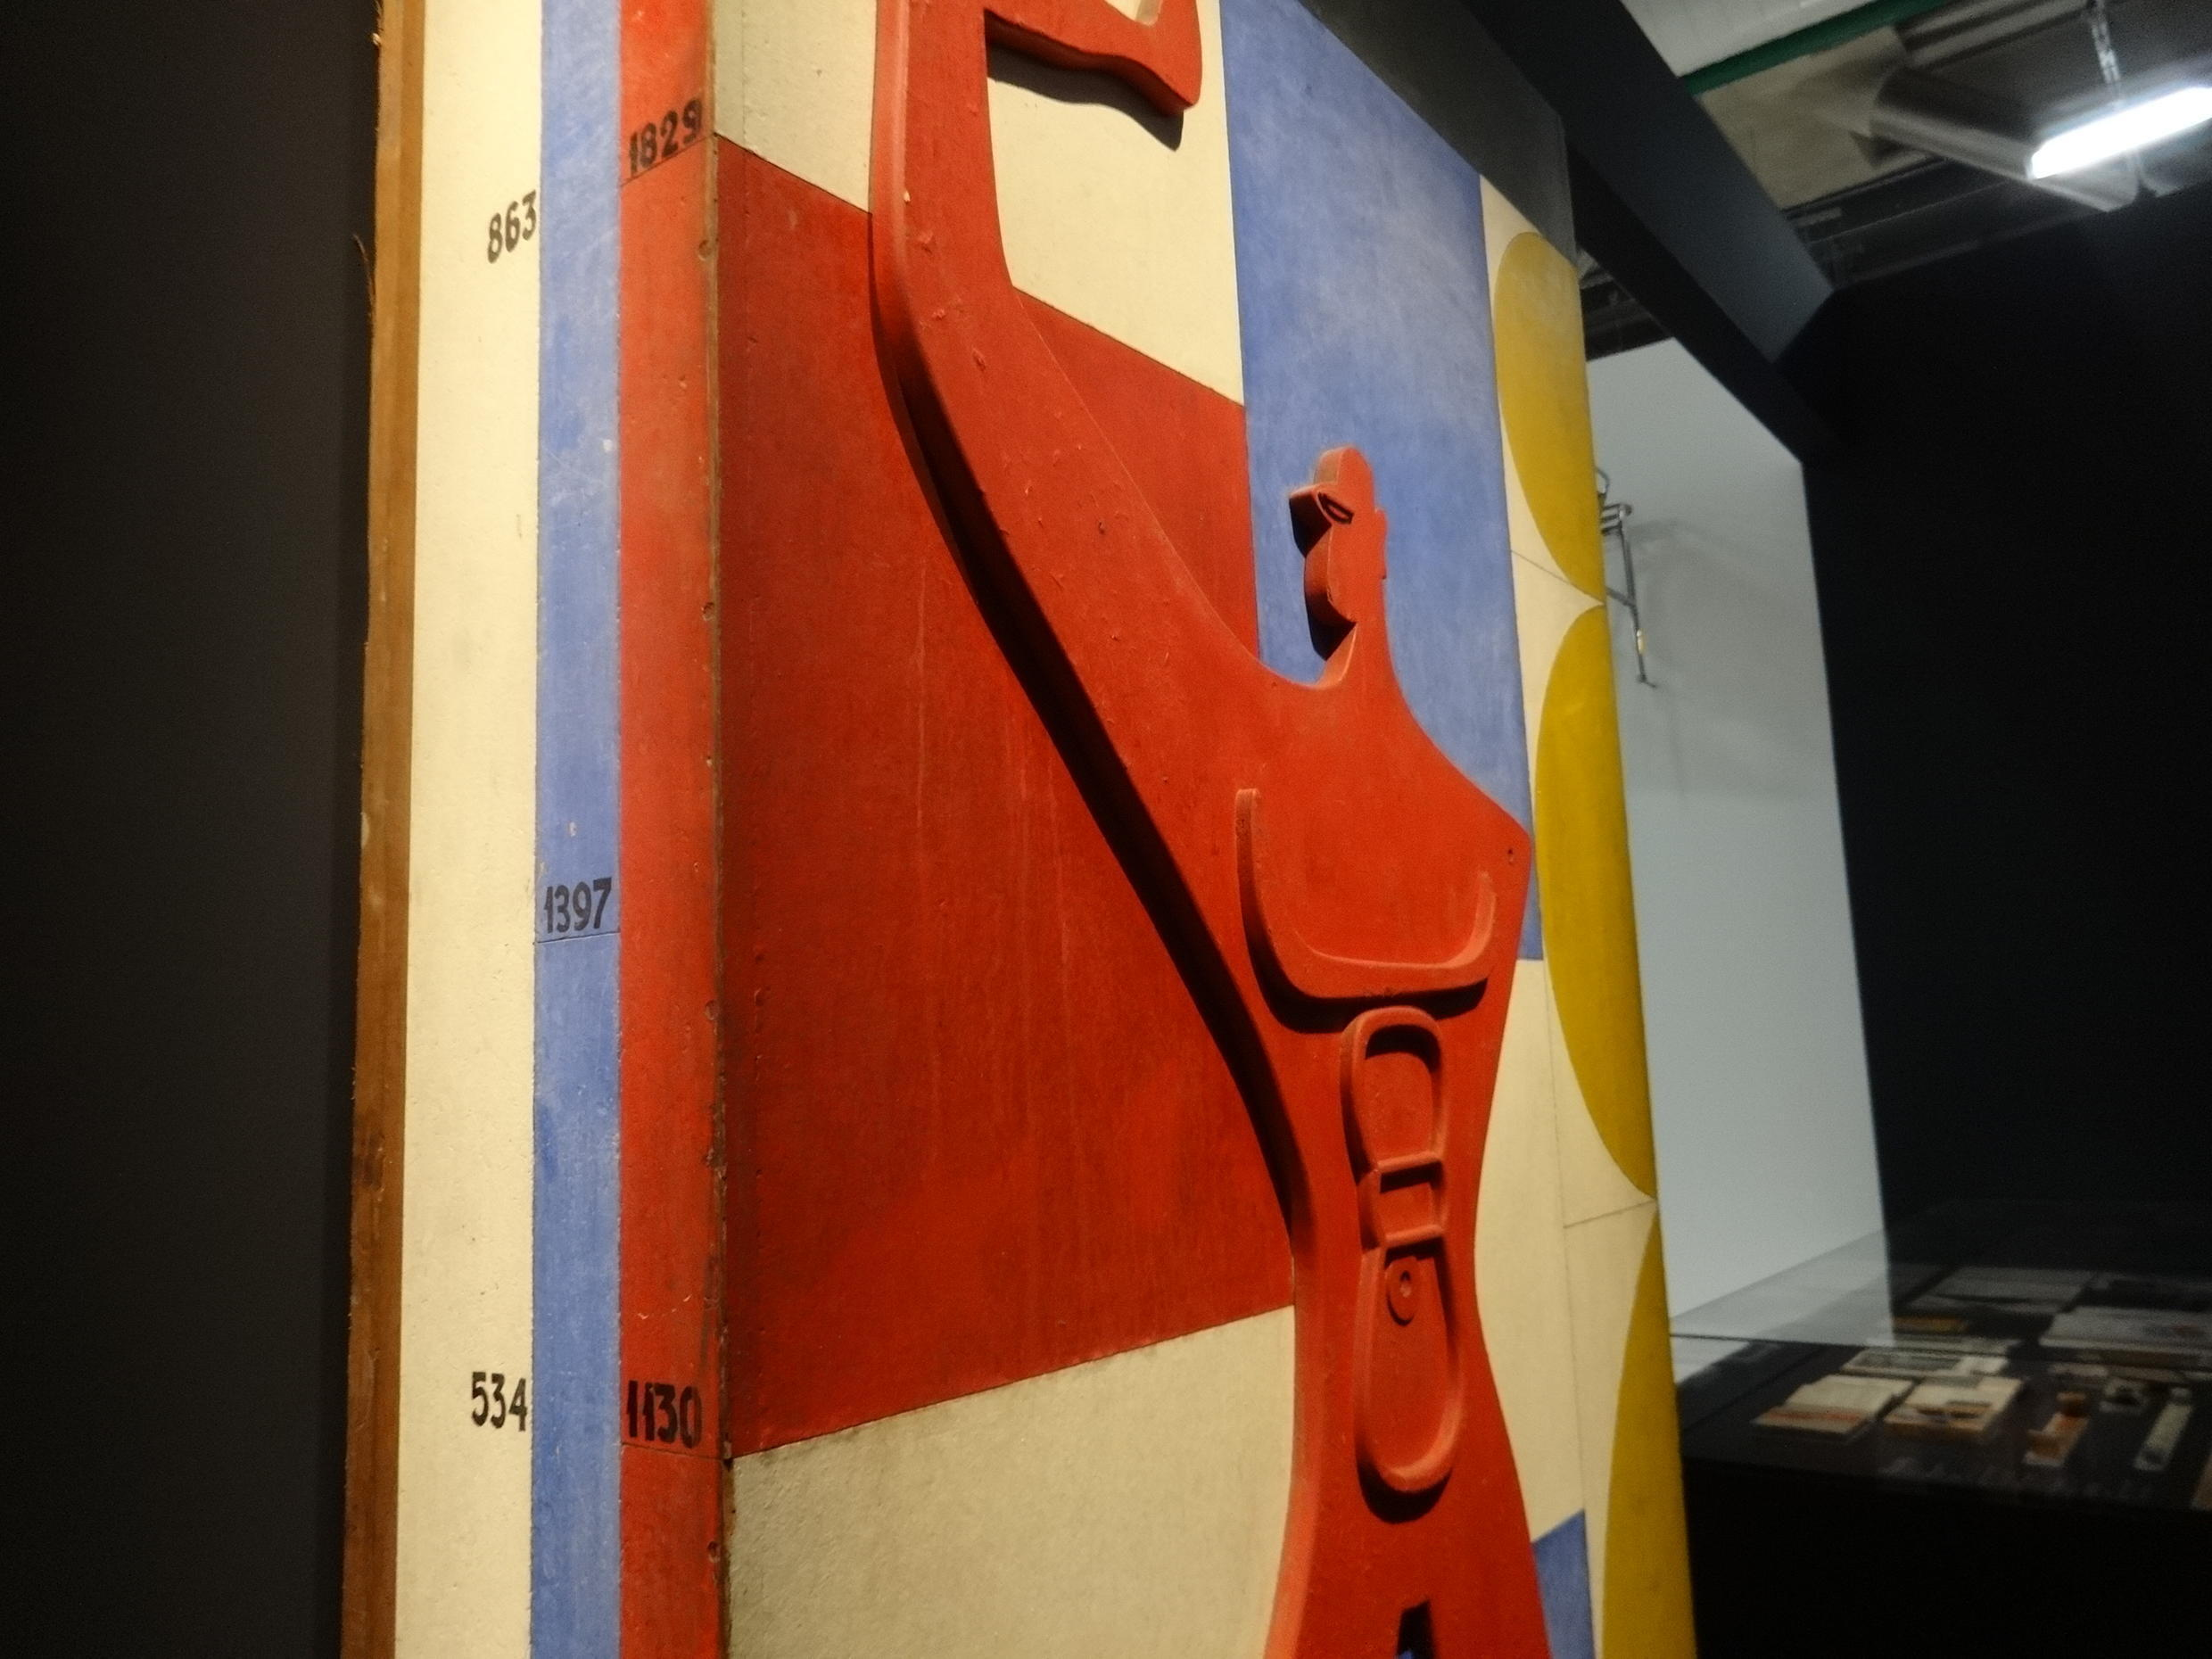 Le Corbusier's 'Modulor', a measurement system based on the proportions of the average man.